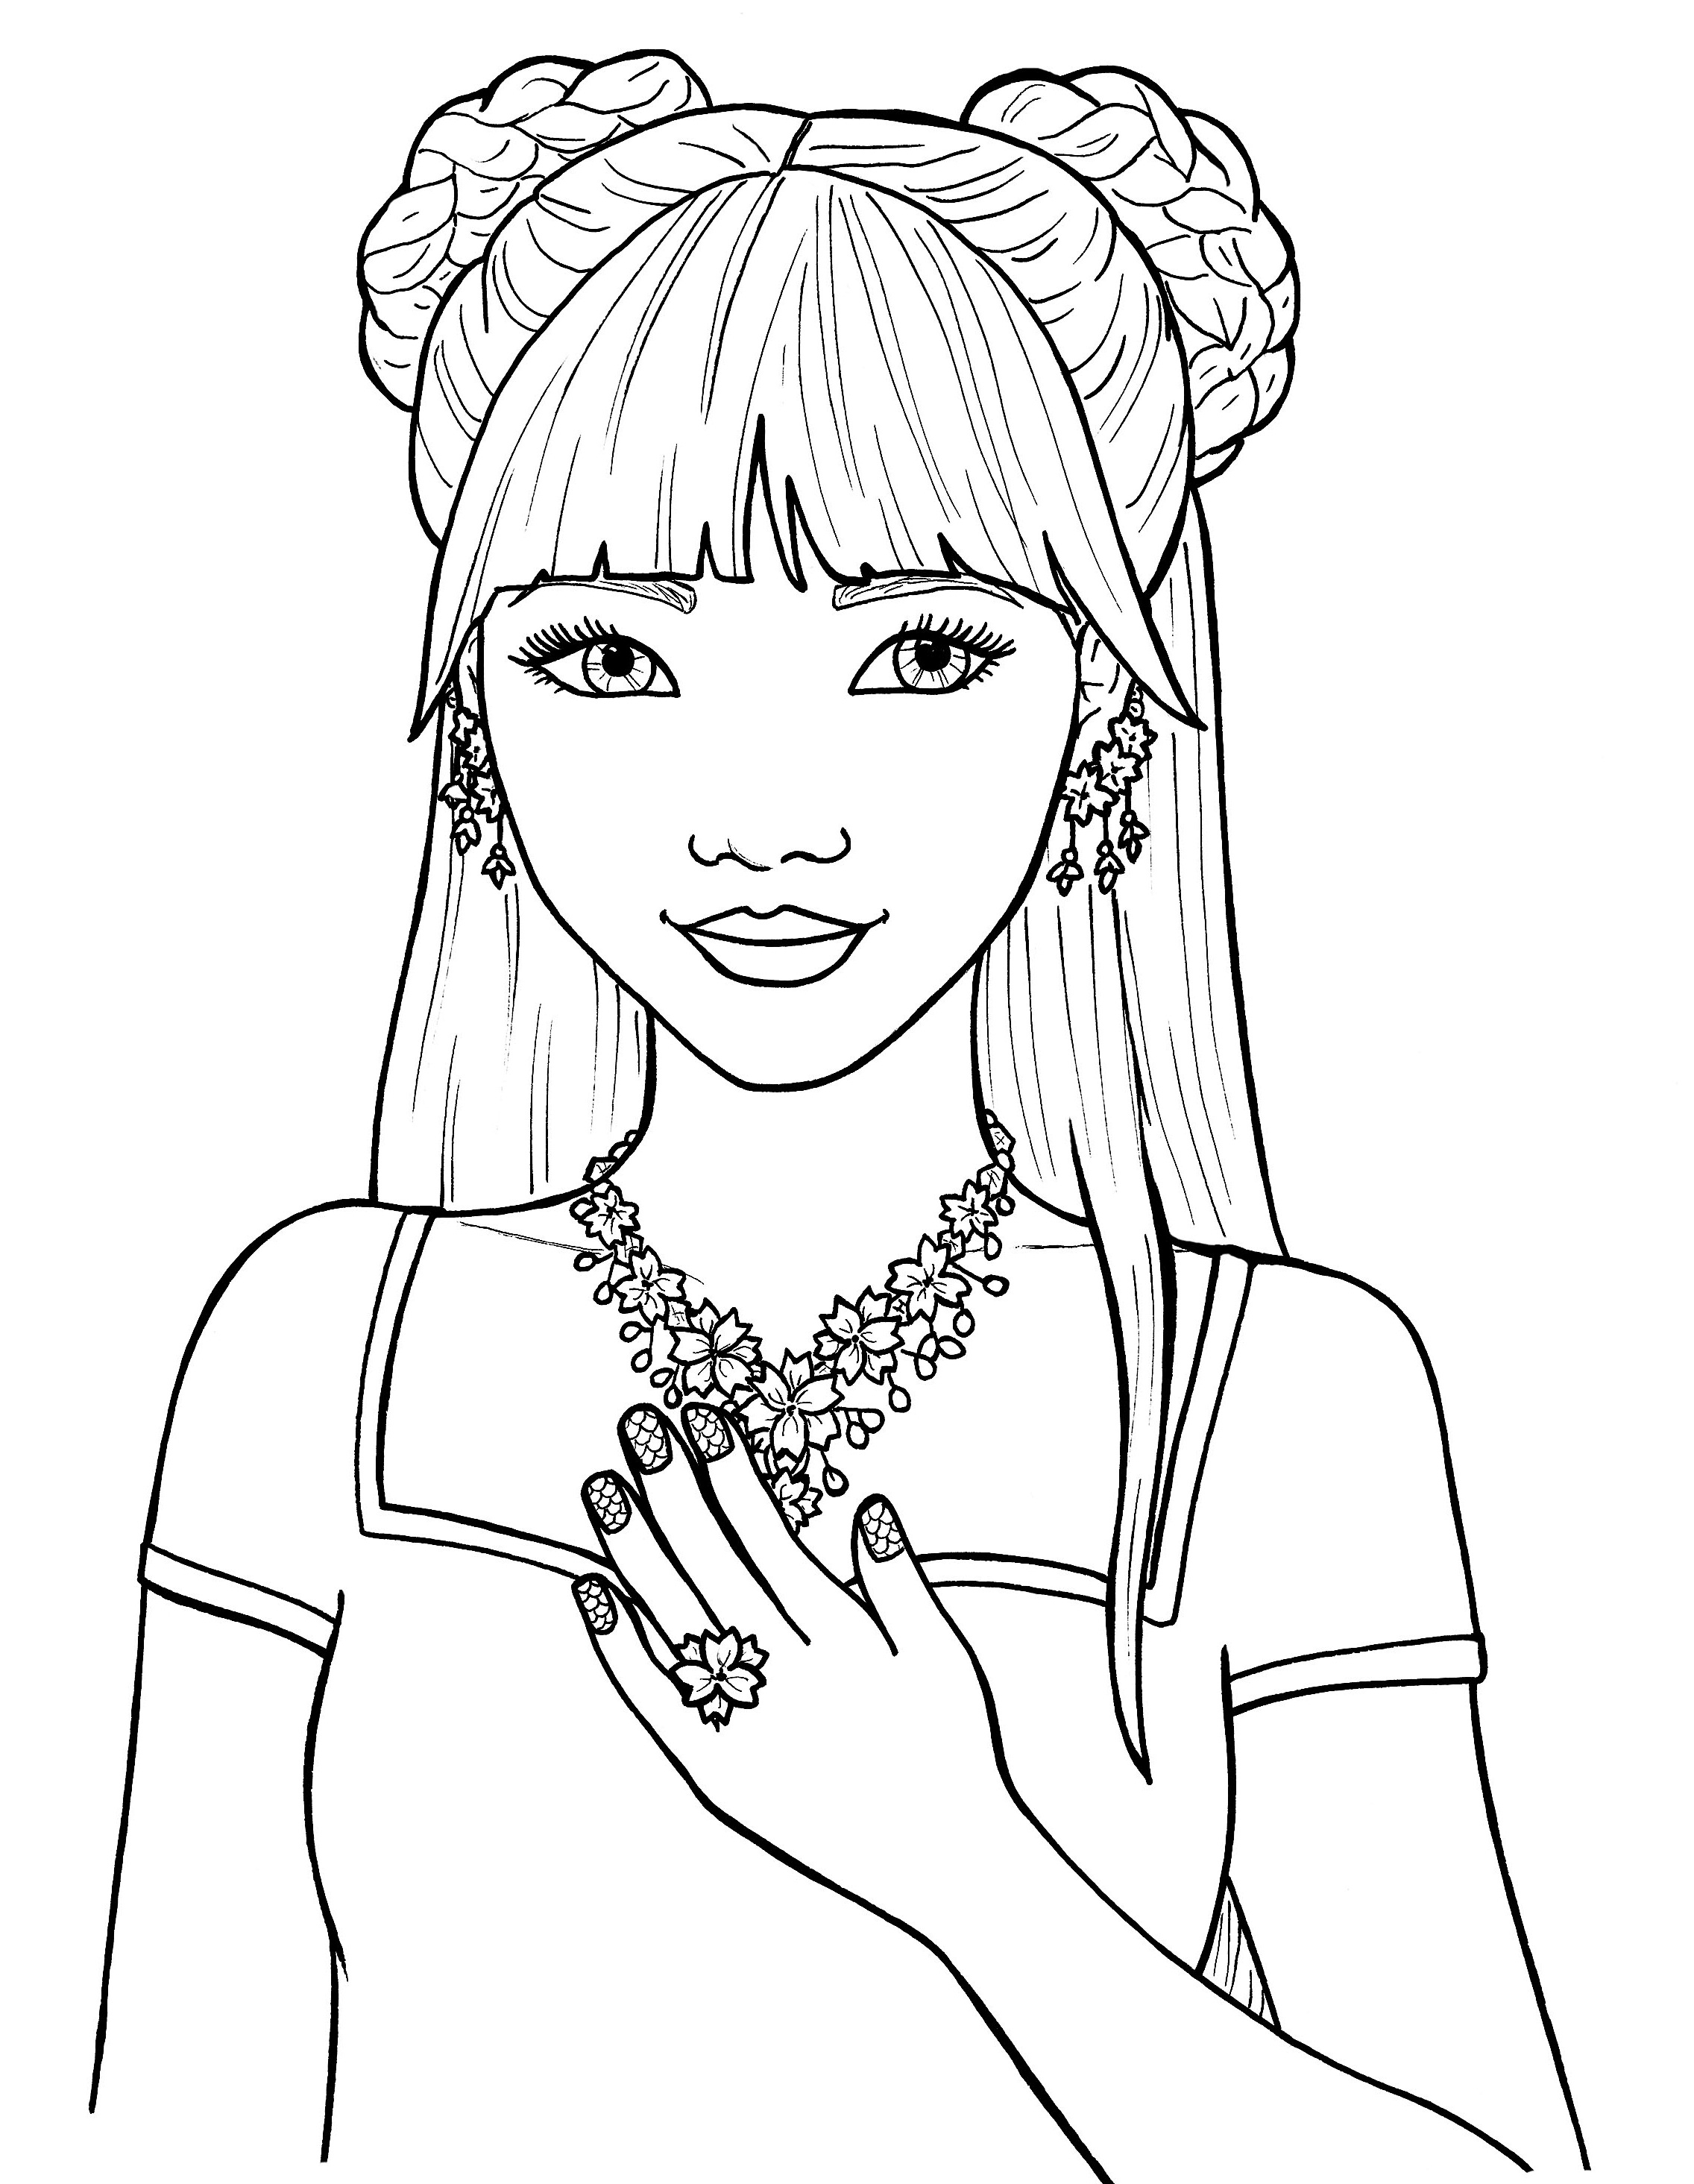 coloring pages of girls kids n funcom 65 coloring pages of groovy girls pages girls coloring of